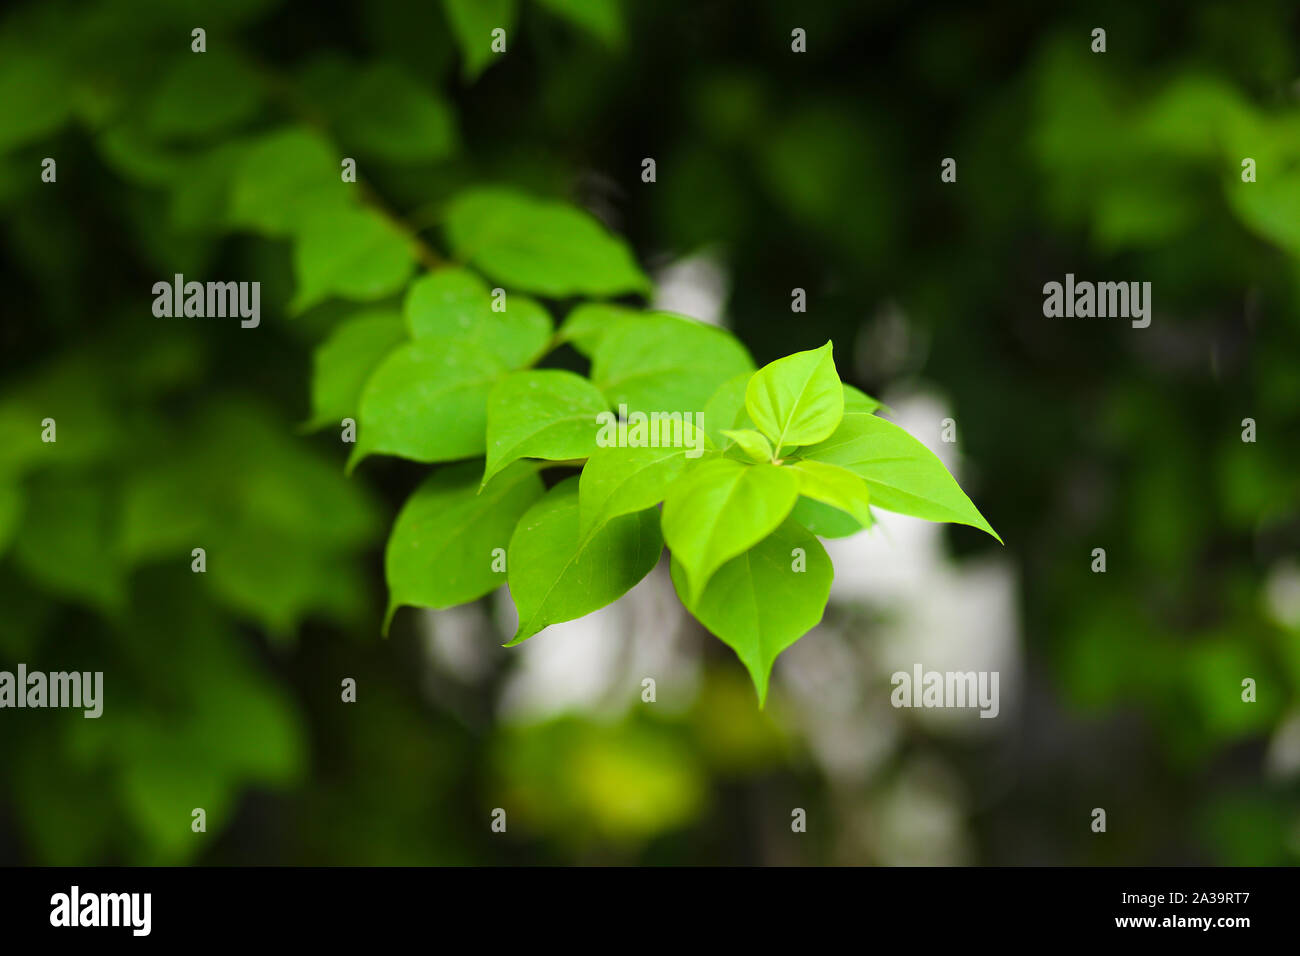 Green Leafs Hd Wallpaper Stock Photo Alamy